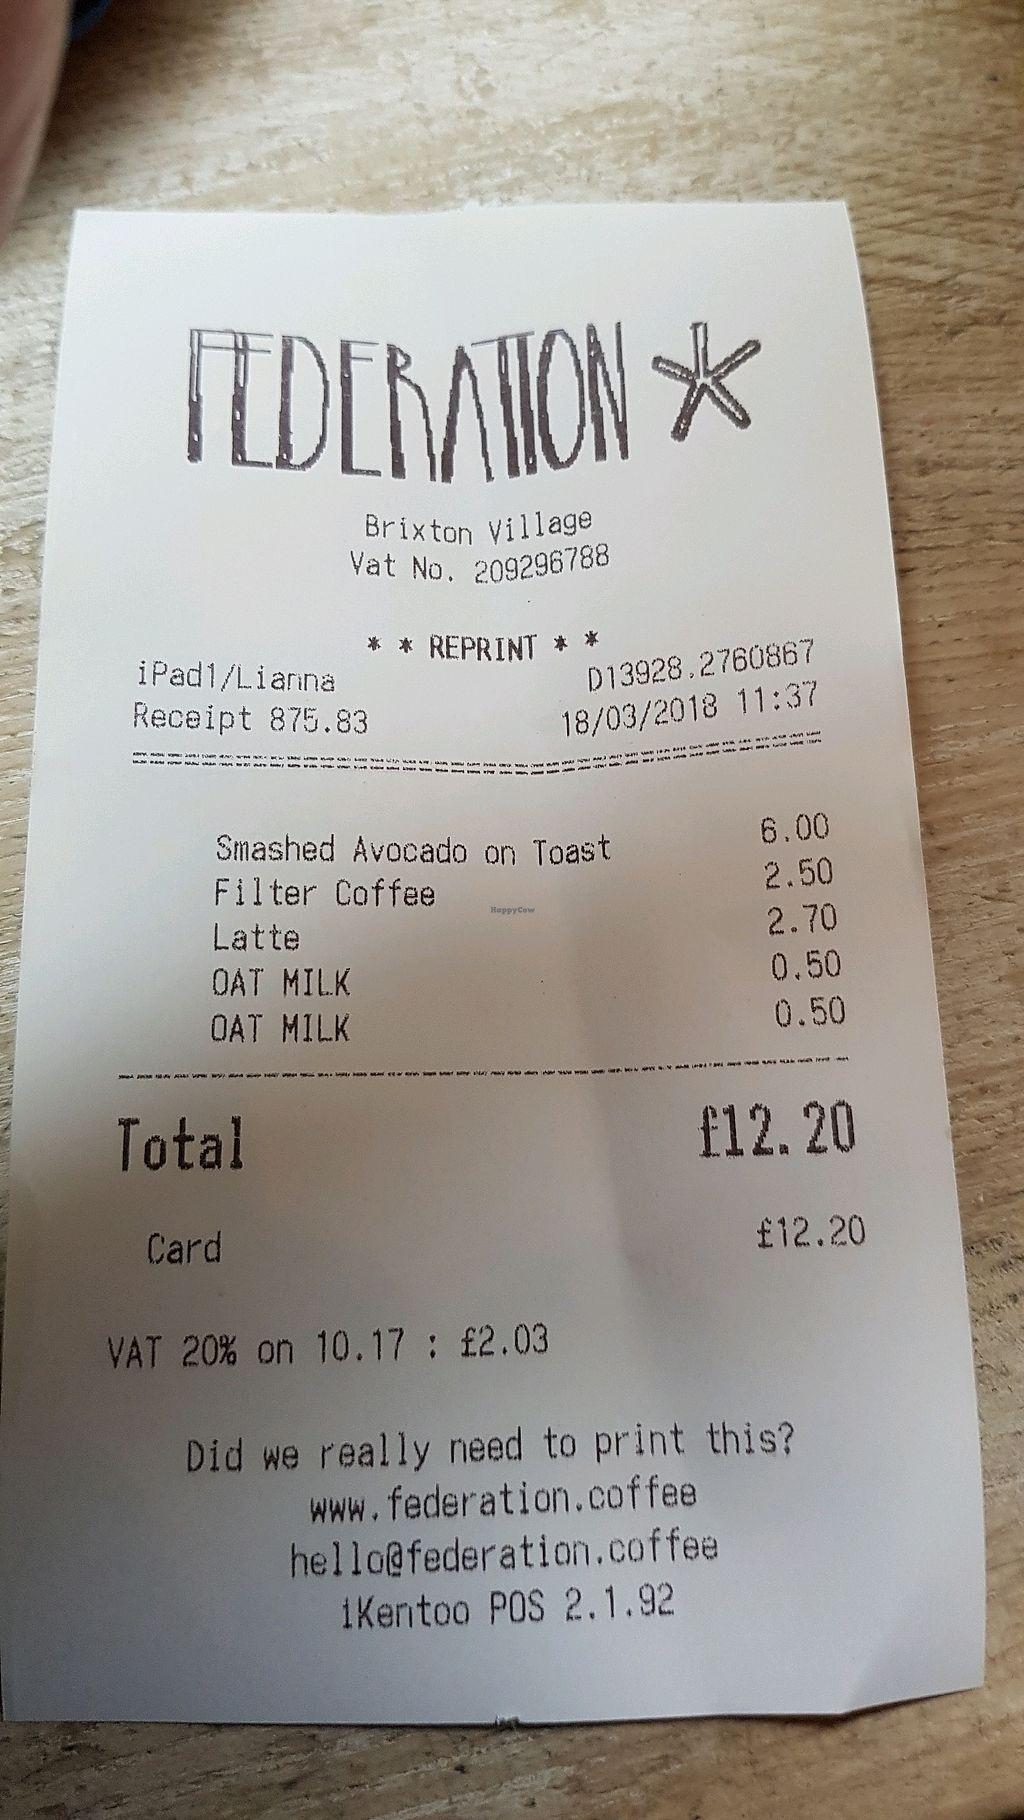 """Photo of Federation Coffee  by <a href=""""/members/profile/jollypig"""">jollypig</a> <br/>50p extra for vegans <br/> March 18, 2018  - <a href='/contact/abuse/image/108851/372370'>Report</a>"""